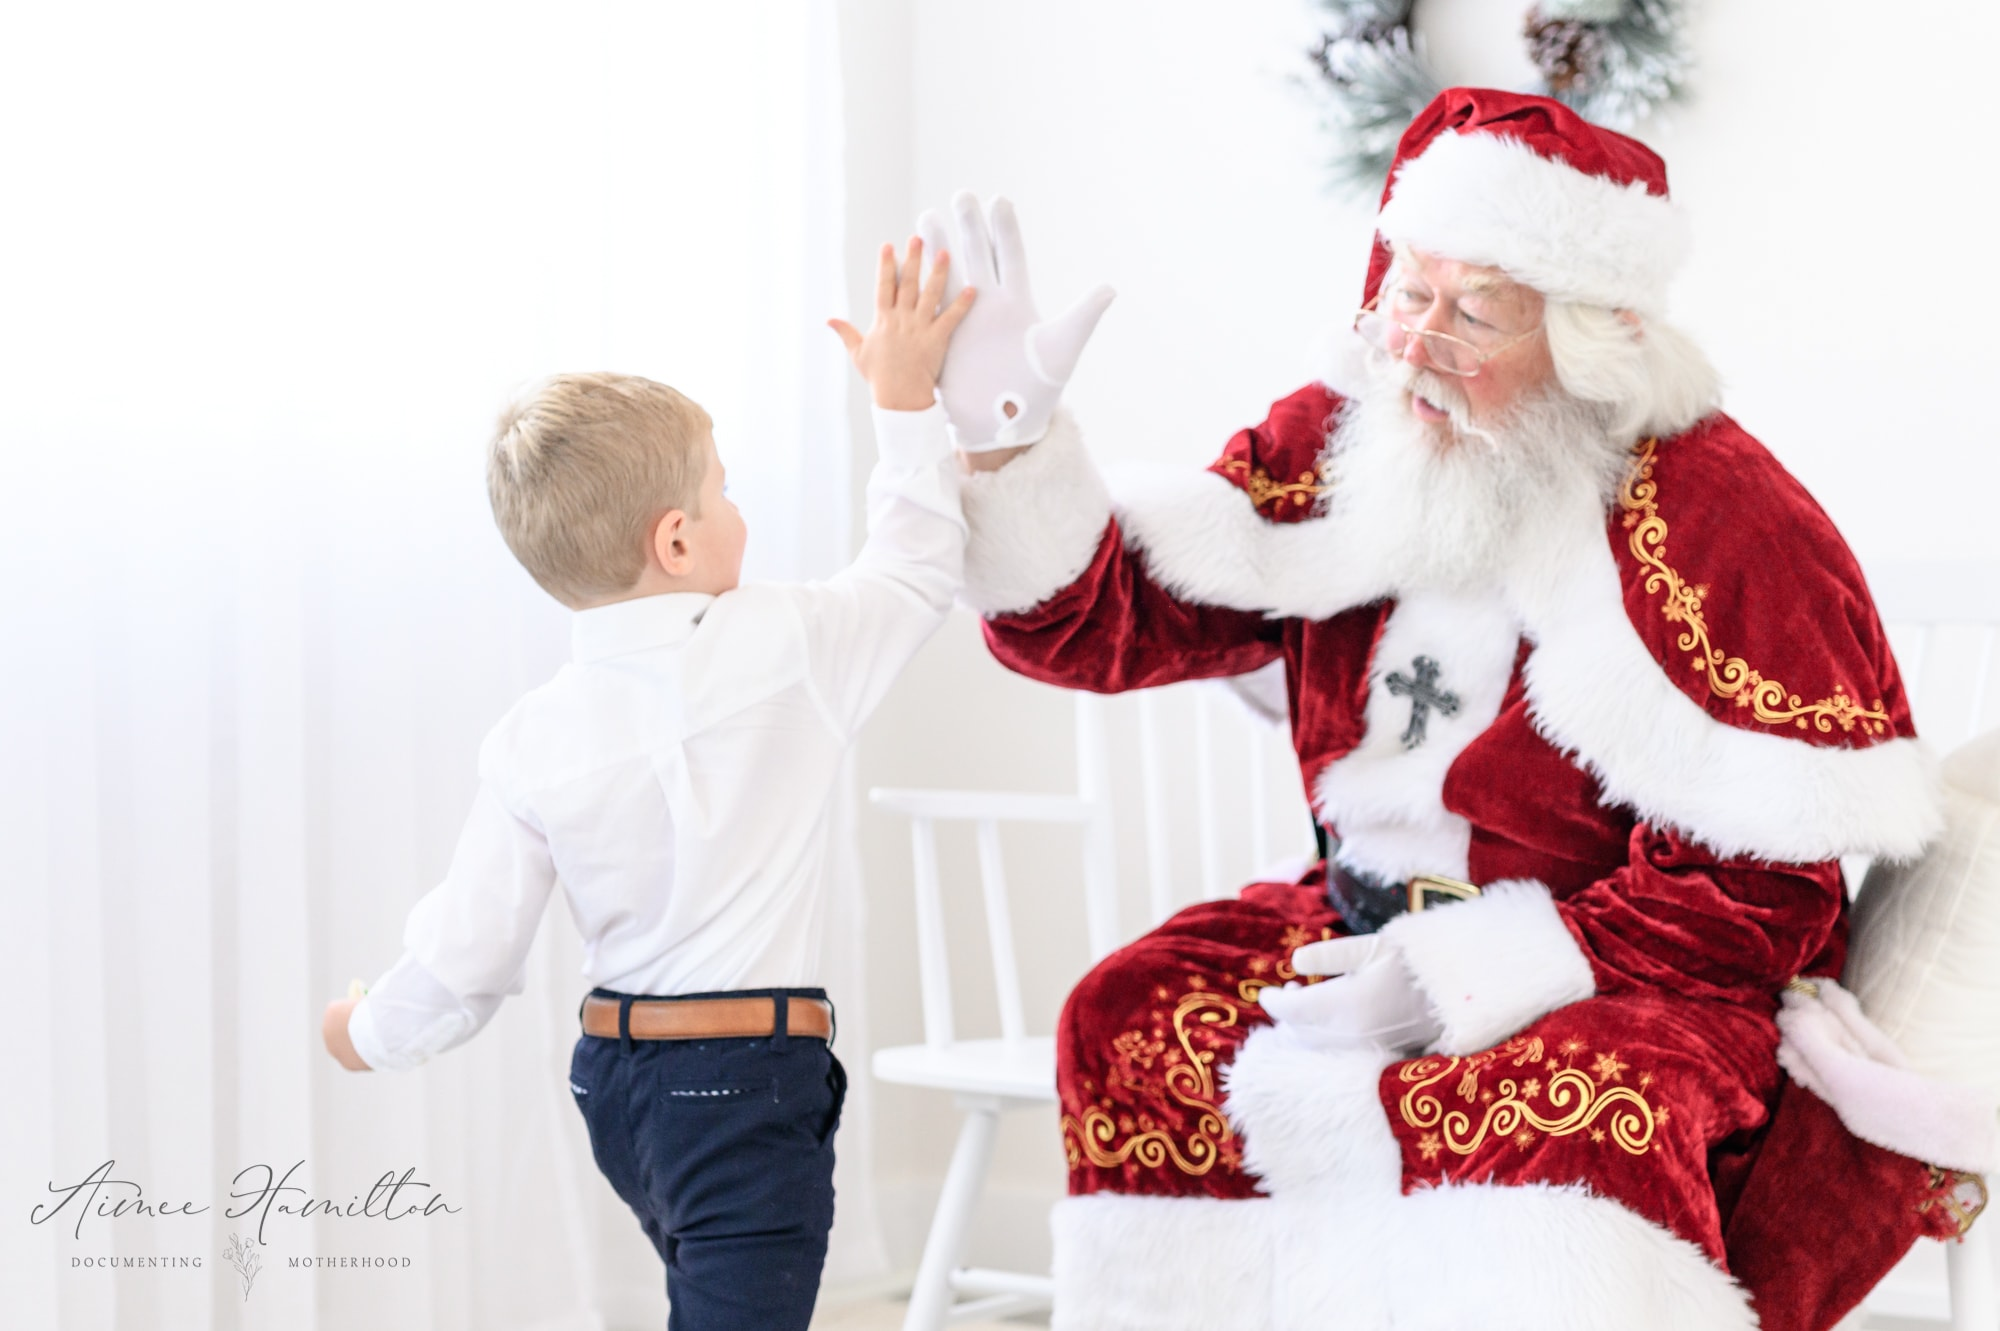 Kid high fives Santa